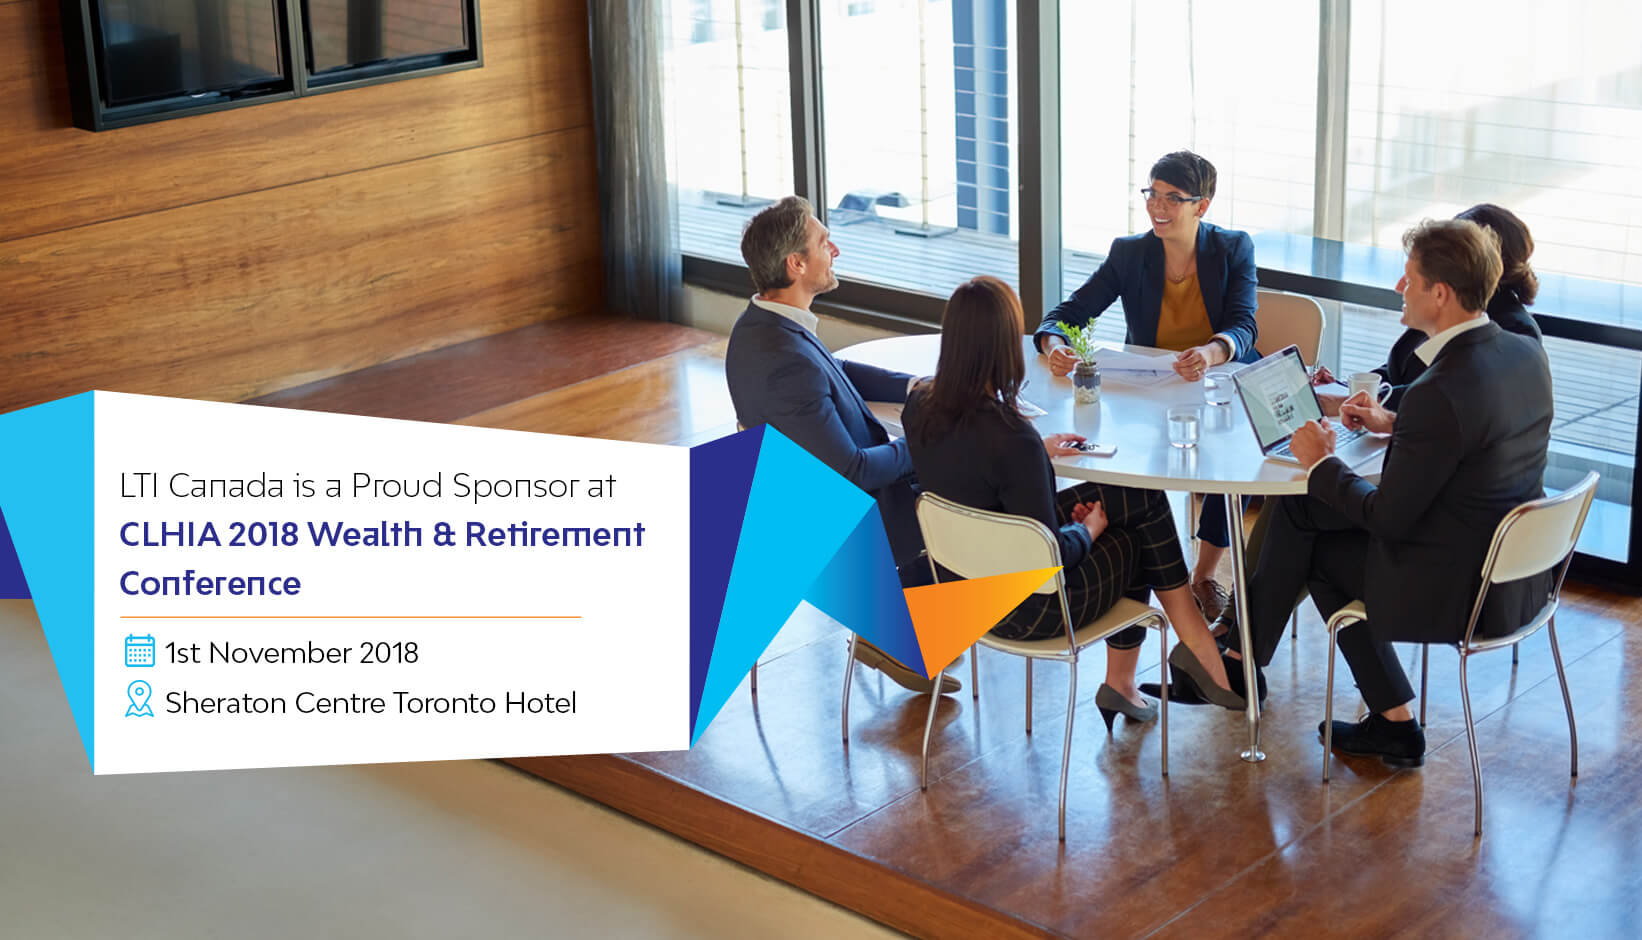 LTI Canada is a Proud Sponsor at CLHIA 2018 Wealth & Retirement Conference